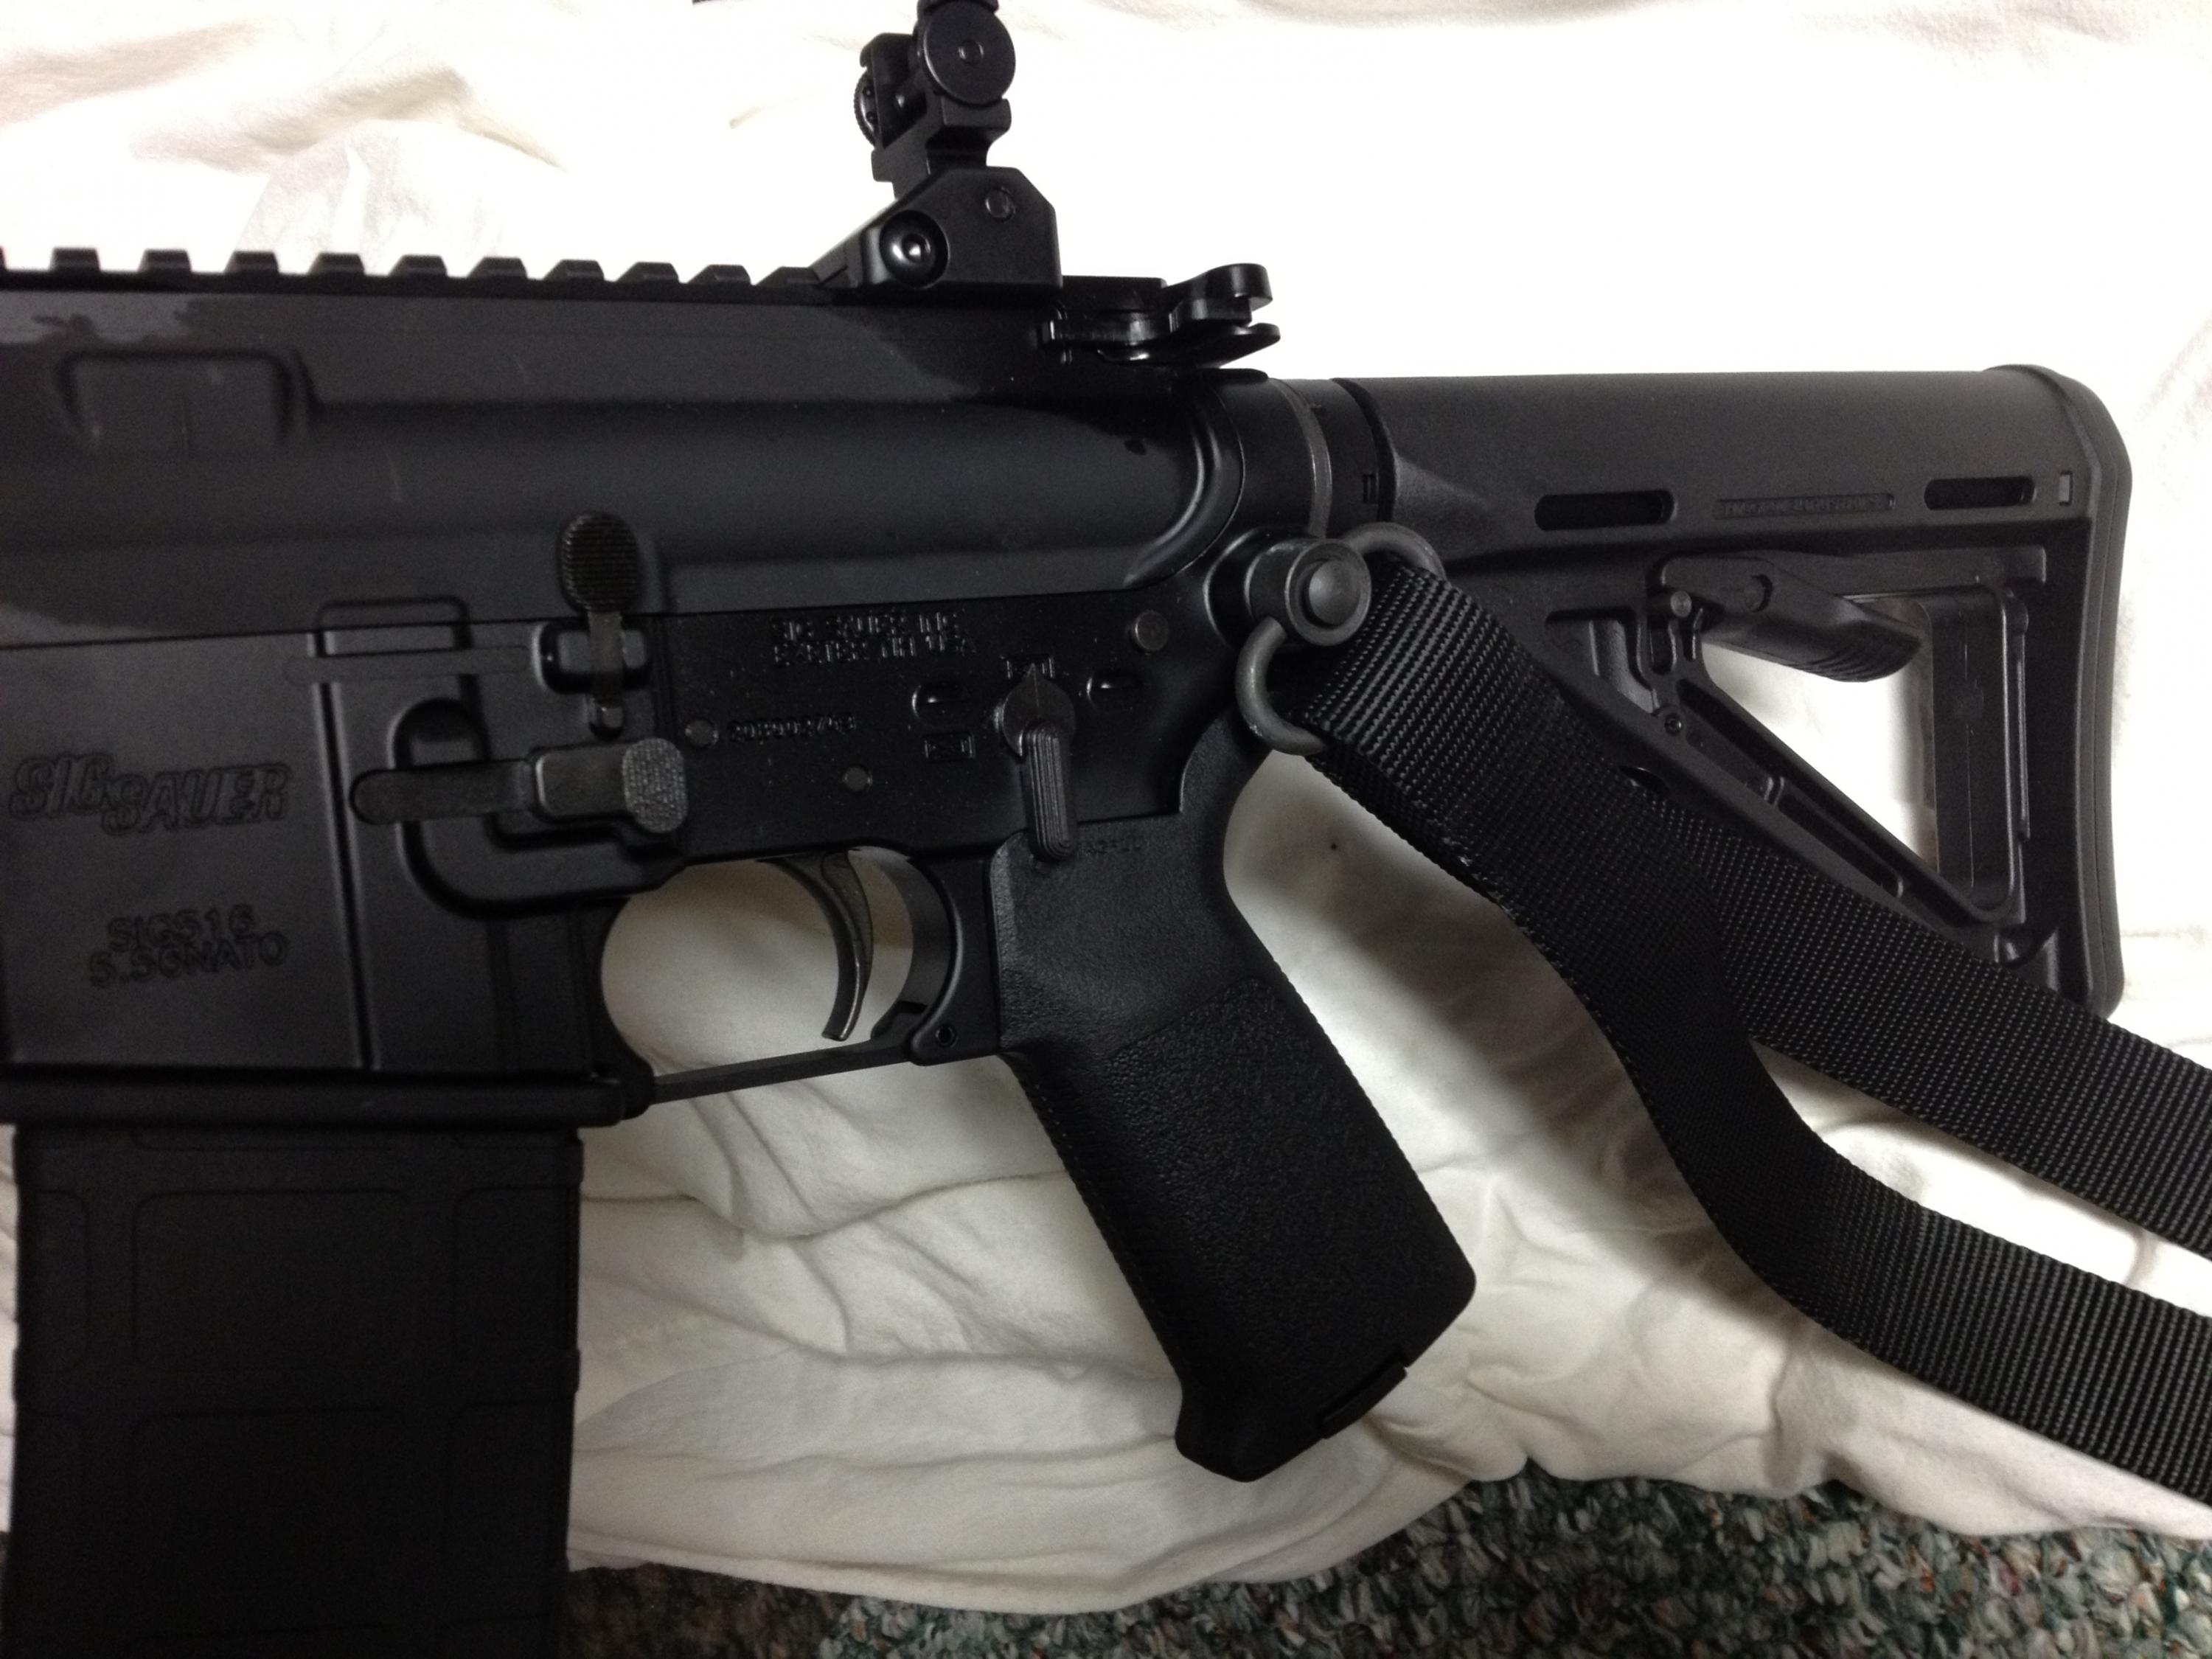 Just took delivery of my new 516 SIG AR! Sweet!!-img_0513.jpg